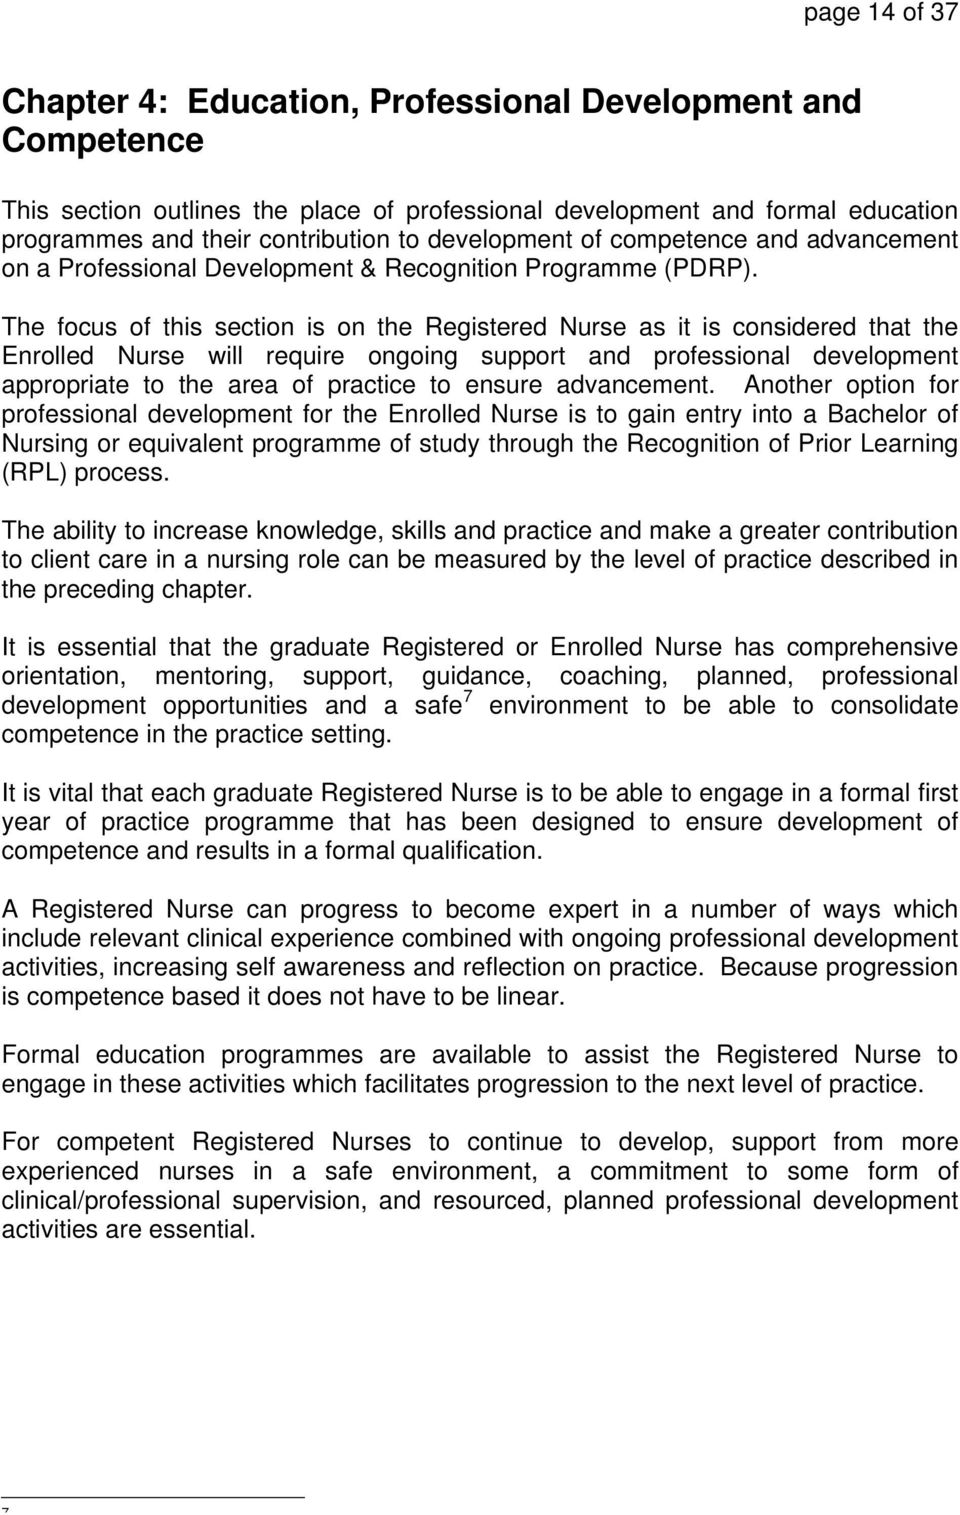 The focus of this section is on the Registered Nurse as it is considered that the Enrolled Nurse will require ongoing support and professional development appropriate to the area of practice to